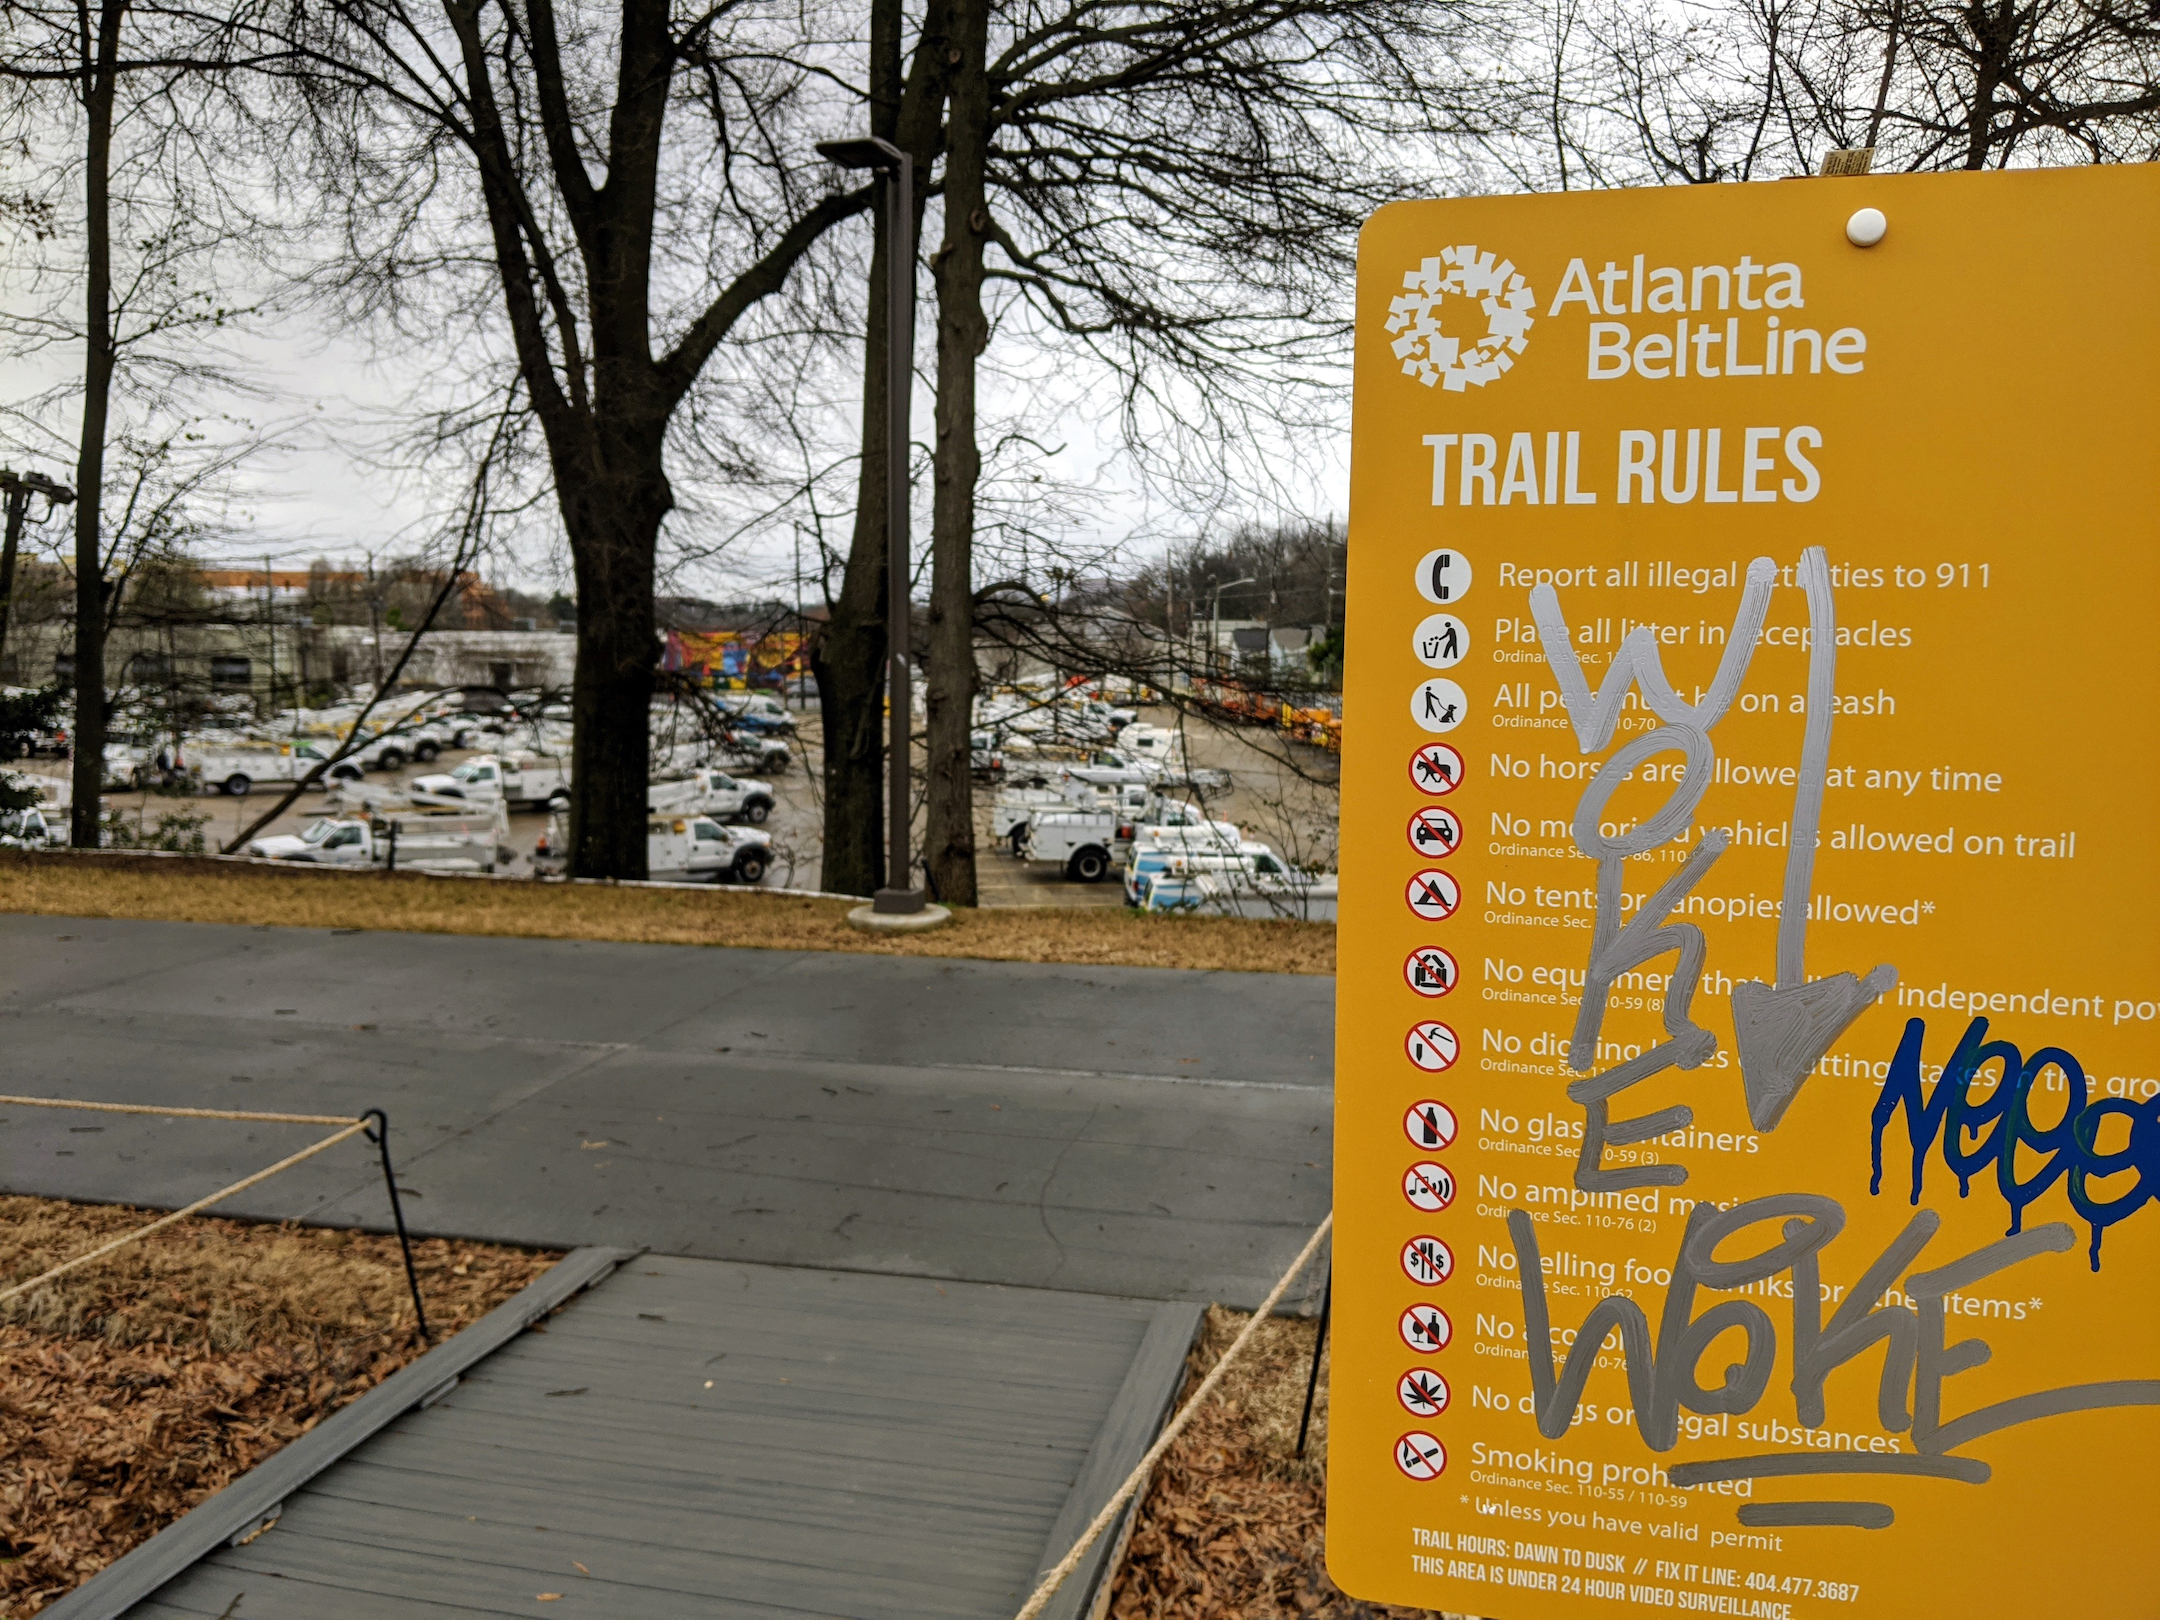 An orange sign with graffiti all over it and a pave pathway with bare trees above.